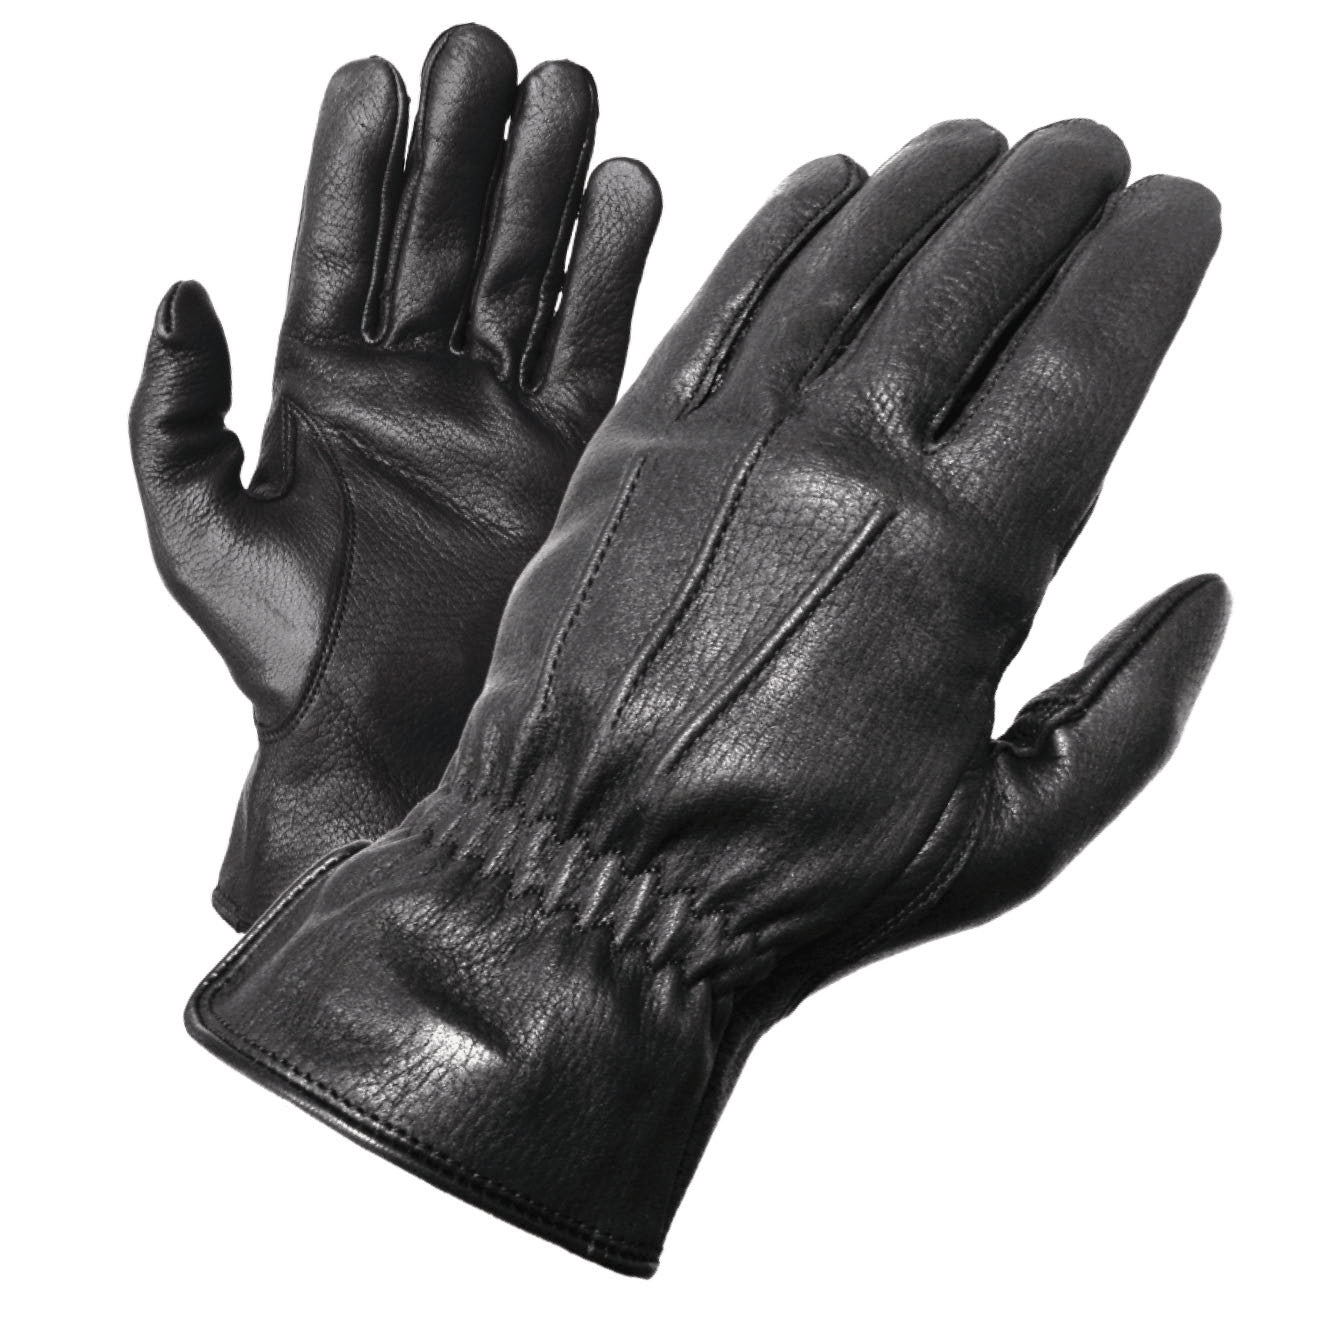 Womens leather biker gloves - Olympia Gloves 140 Deerskin I Gloves Product Image